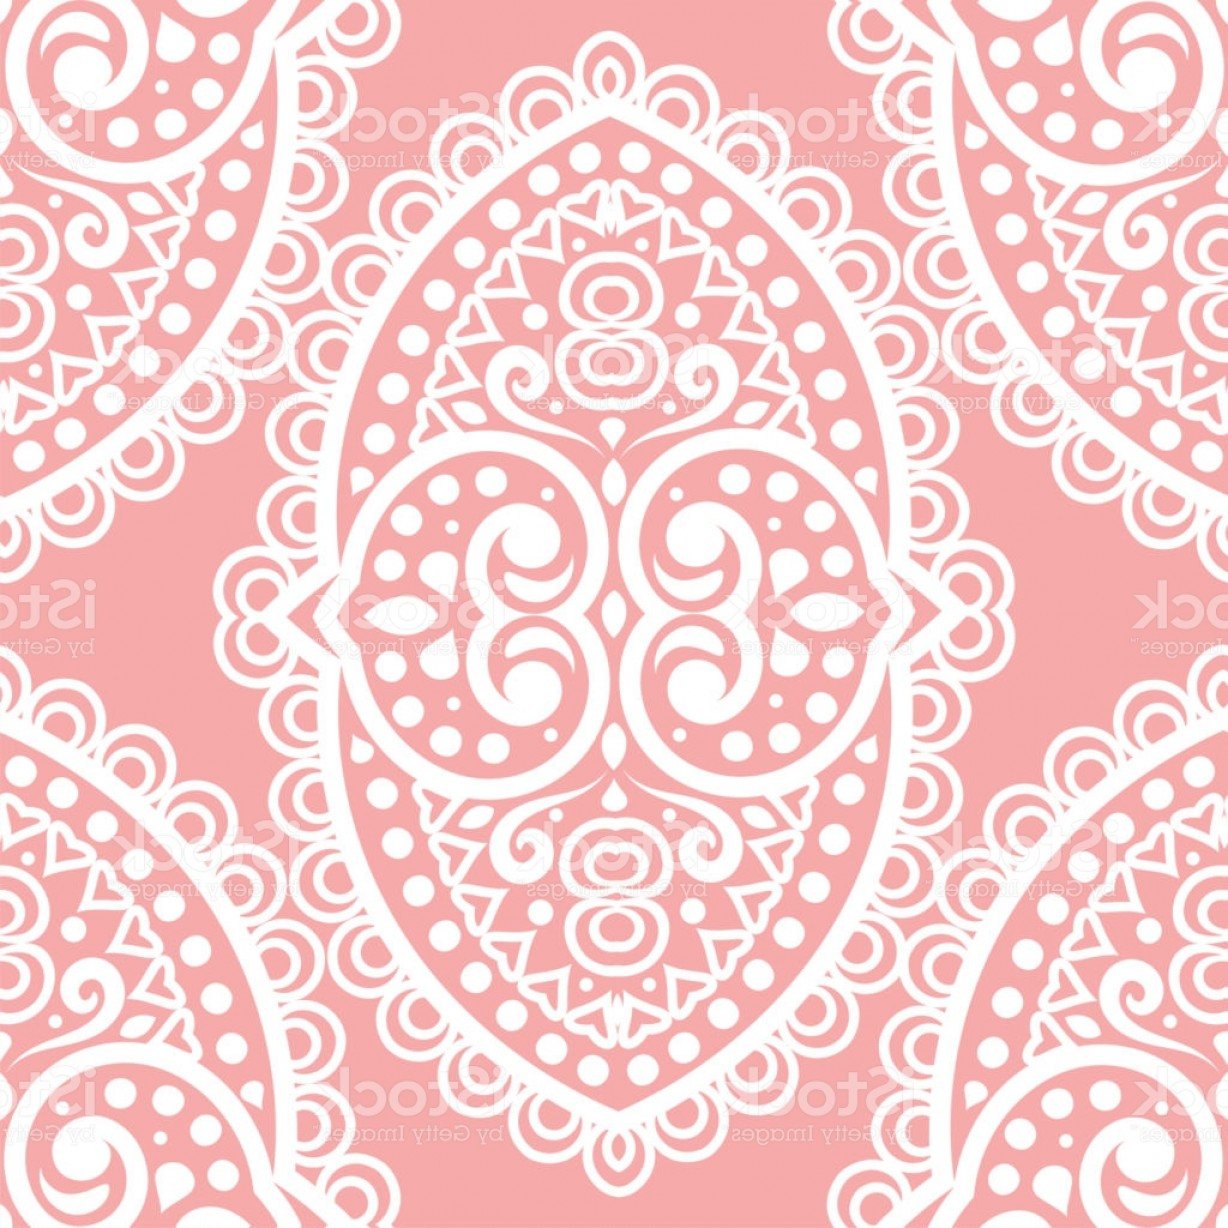 Aqua Victorian Medallions Vectors: Pink And White Vintage Vector Seamless Pattern Wallpaper Elegant Classic Texture Gm